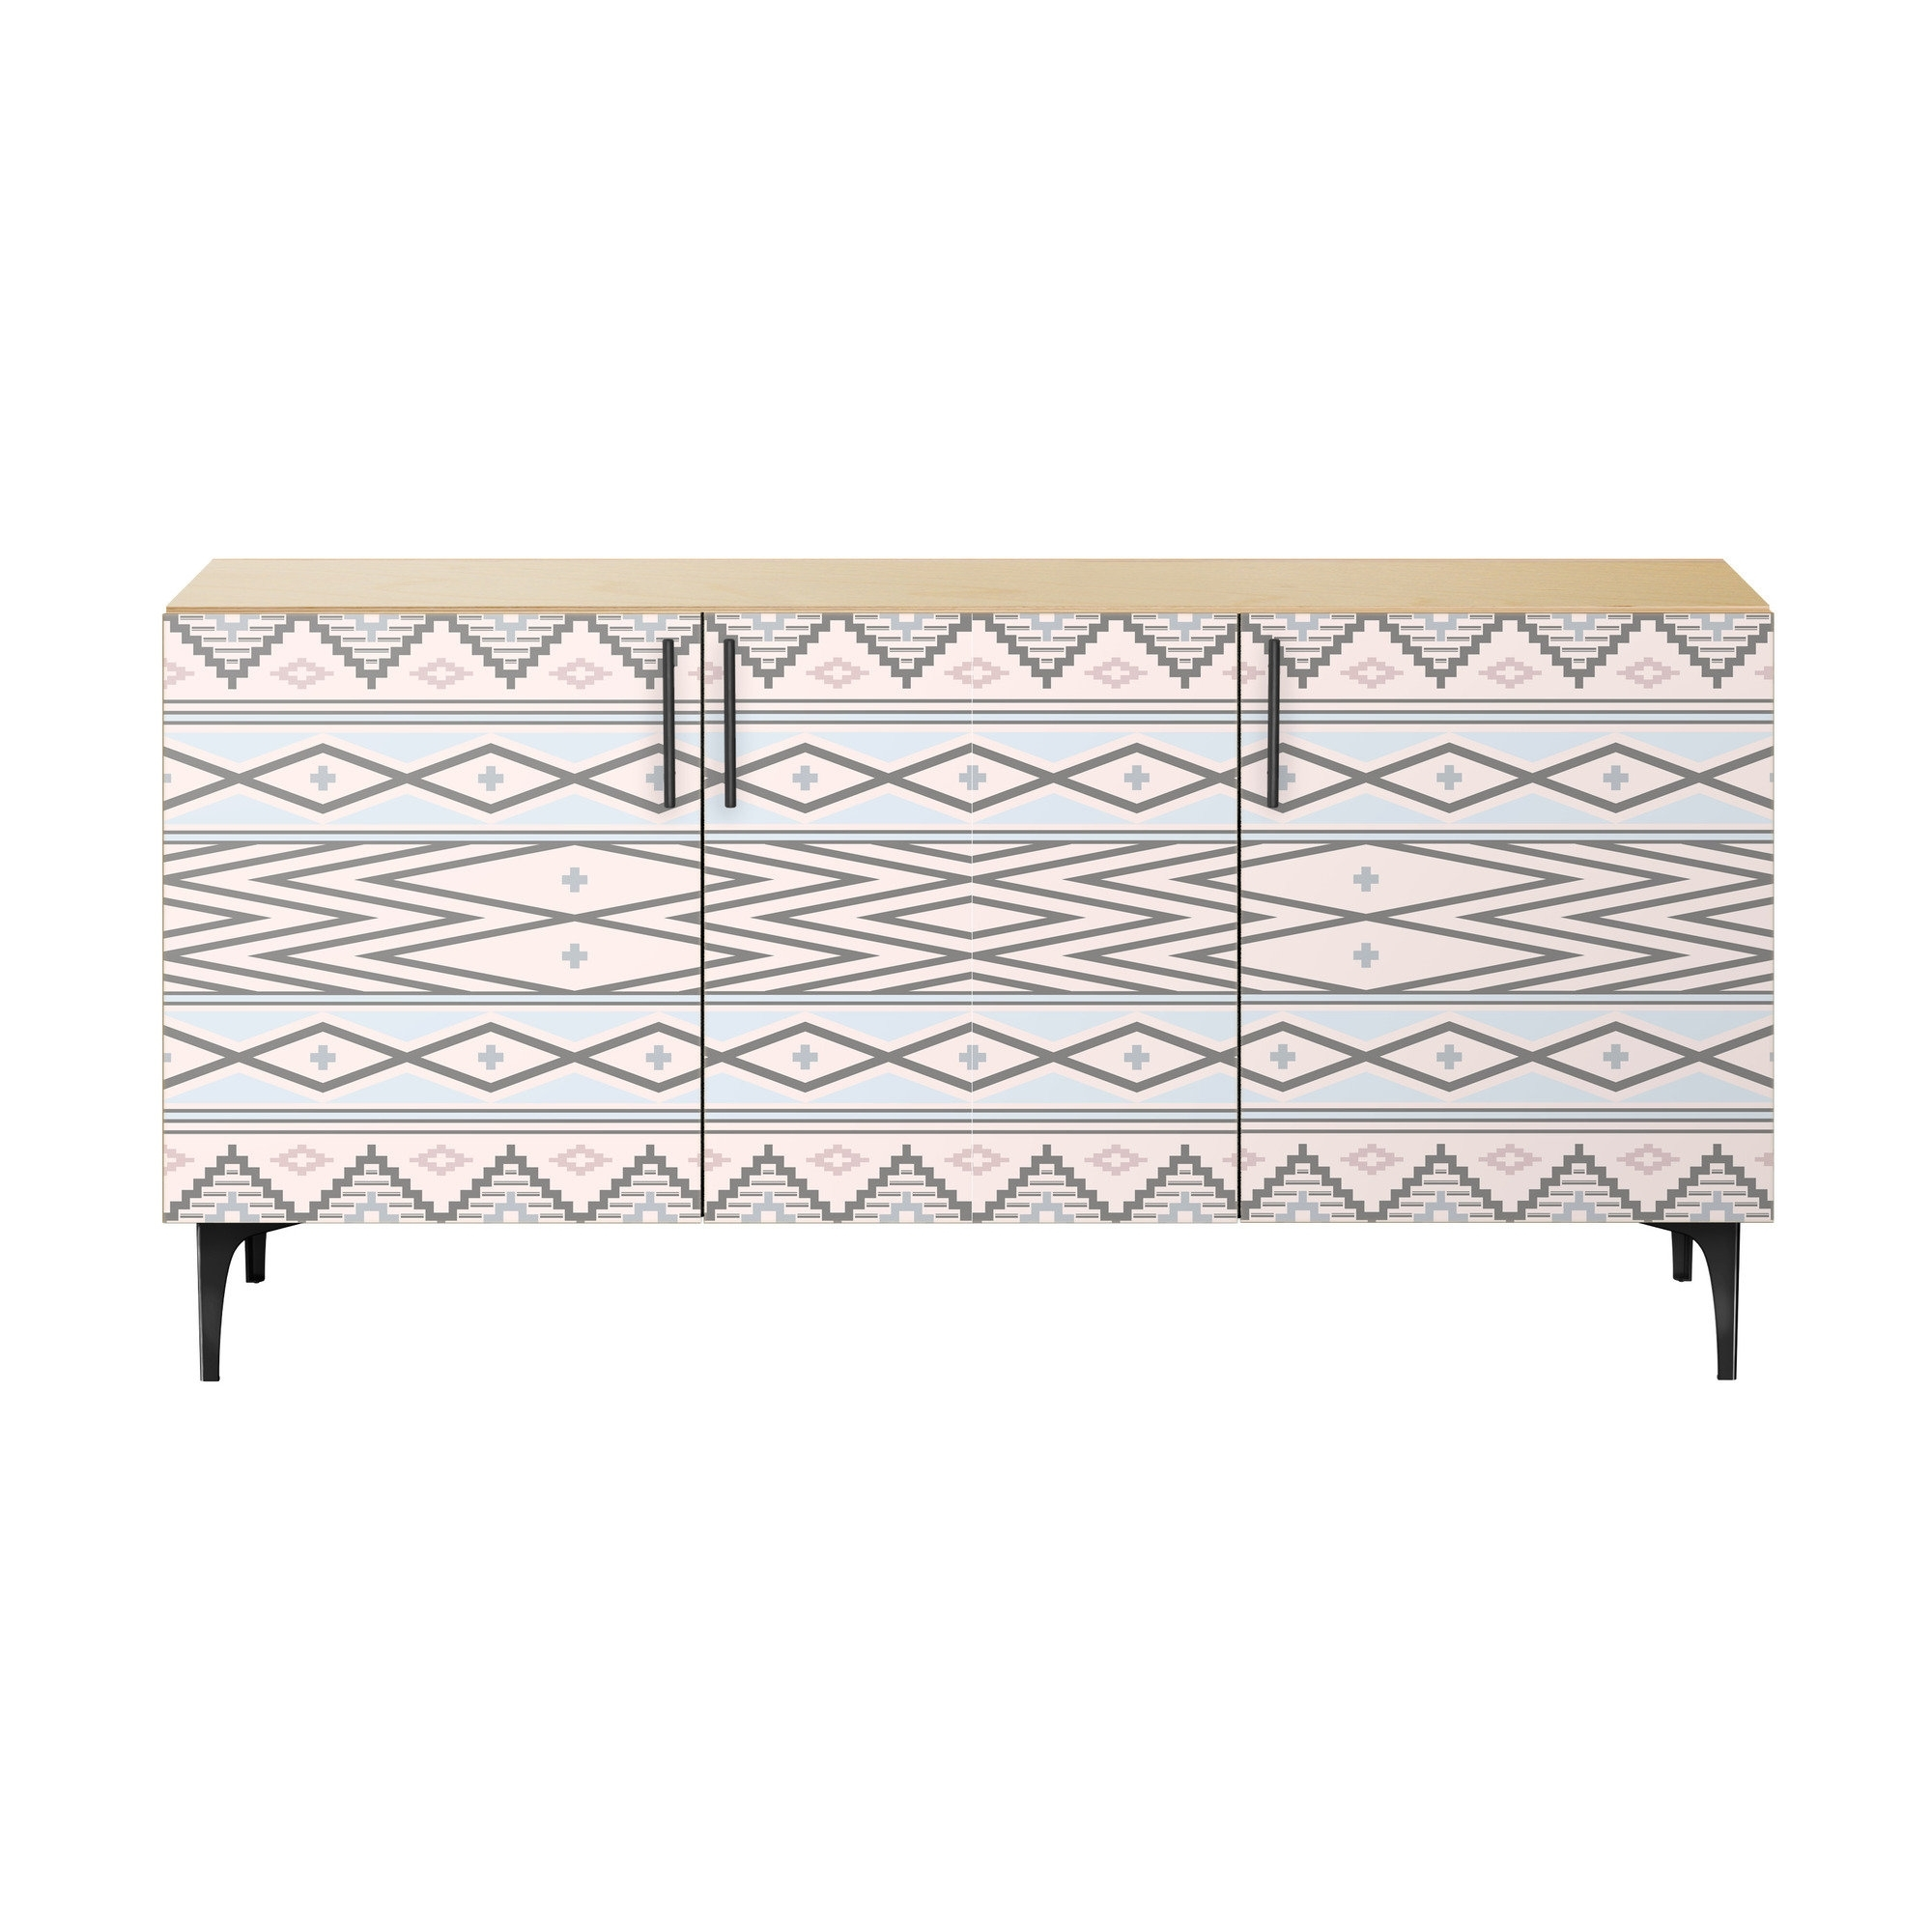 Bungalow Rose Claire Sideboard | Wayfair pertaining to Metal Refinement 4 Door Sideboards (Image 7 of 30)